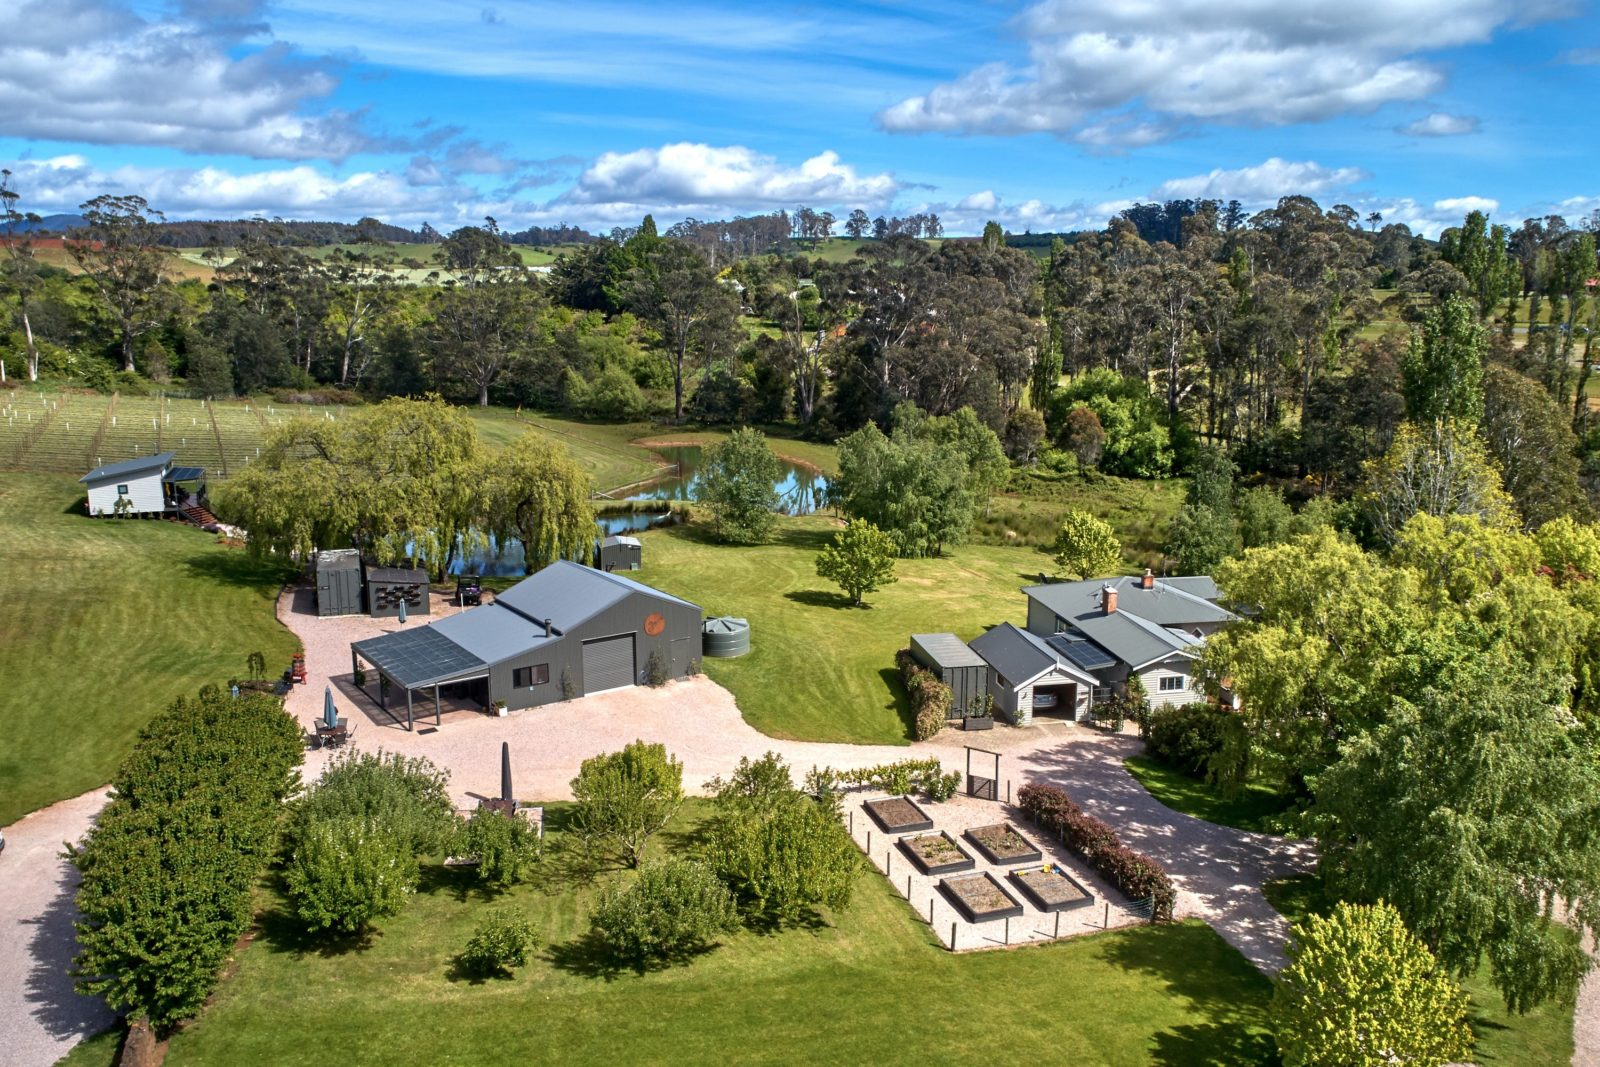 Aerial view of 3 Willows Vineyard cellar door, accommodation and gardens